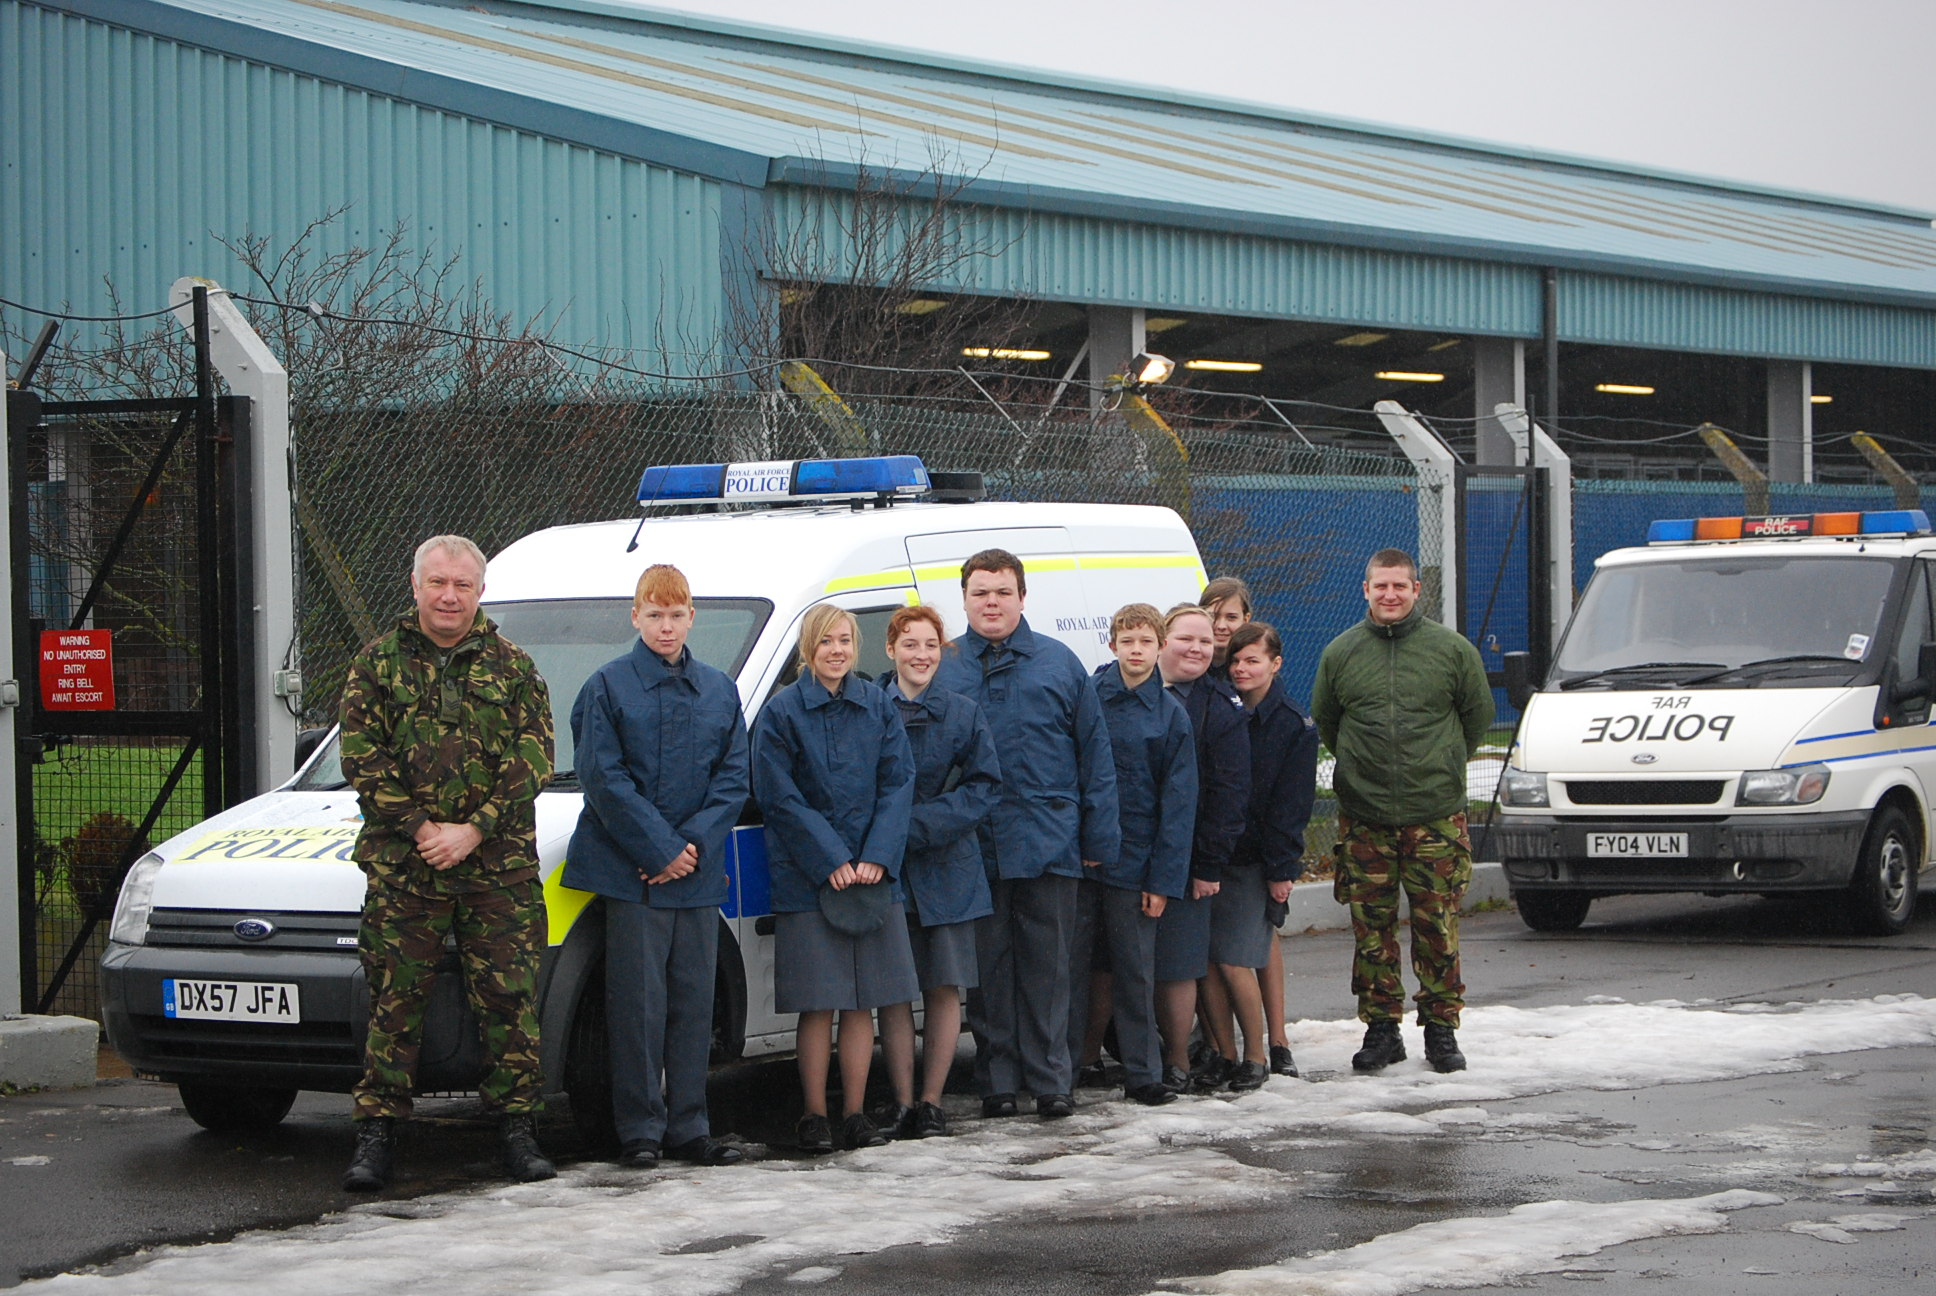 raf-police-dog-section-visit-raf-waddington-dec-2010-v2